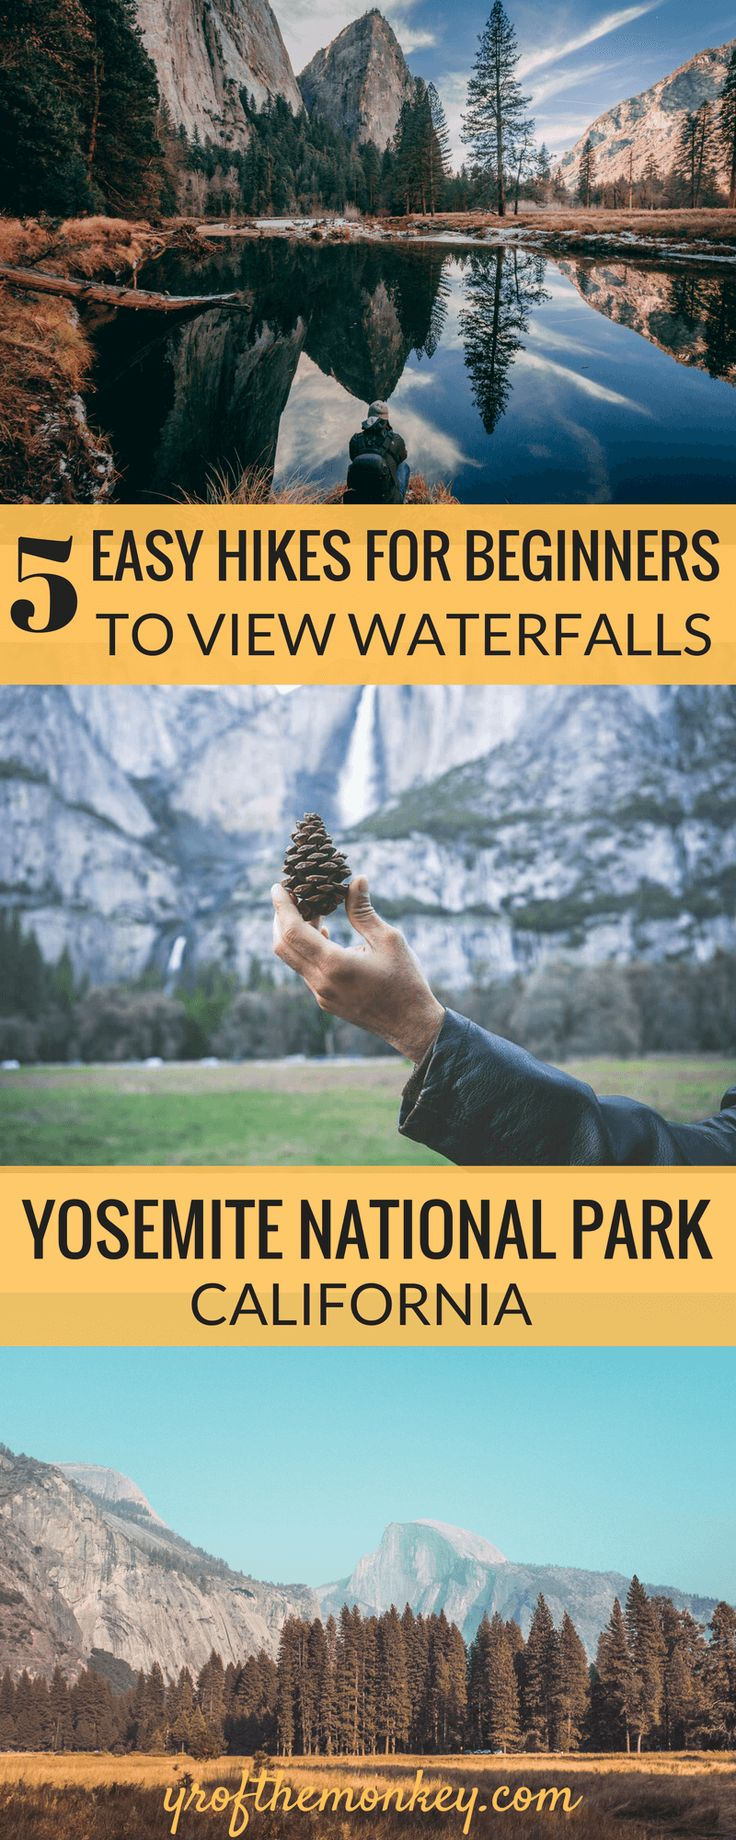 Looking for easy Yosemite hikes to see some gorgeous waterfalls and other attractions in Yosemite National Park, California? This post with 5 such easy to moderate day hikes in and around Yosemite valley has you covered if you are a non hiker! Includes a hike to a secret waterfall where there is practically no one! Pin this post to your California or US national parks board! #yosemitenationalpark #yosemitehiking #easydayhikes #californiatravel #USA #USnationalparks